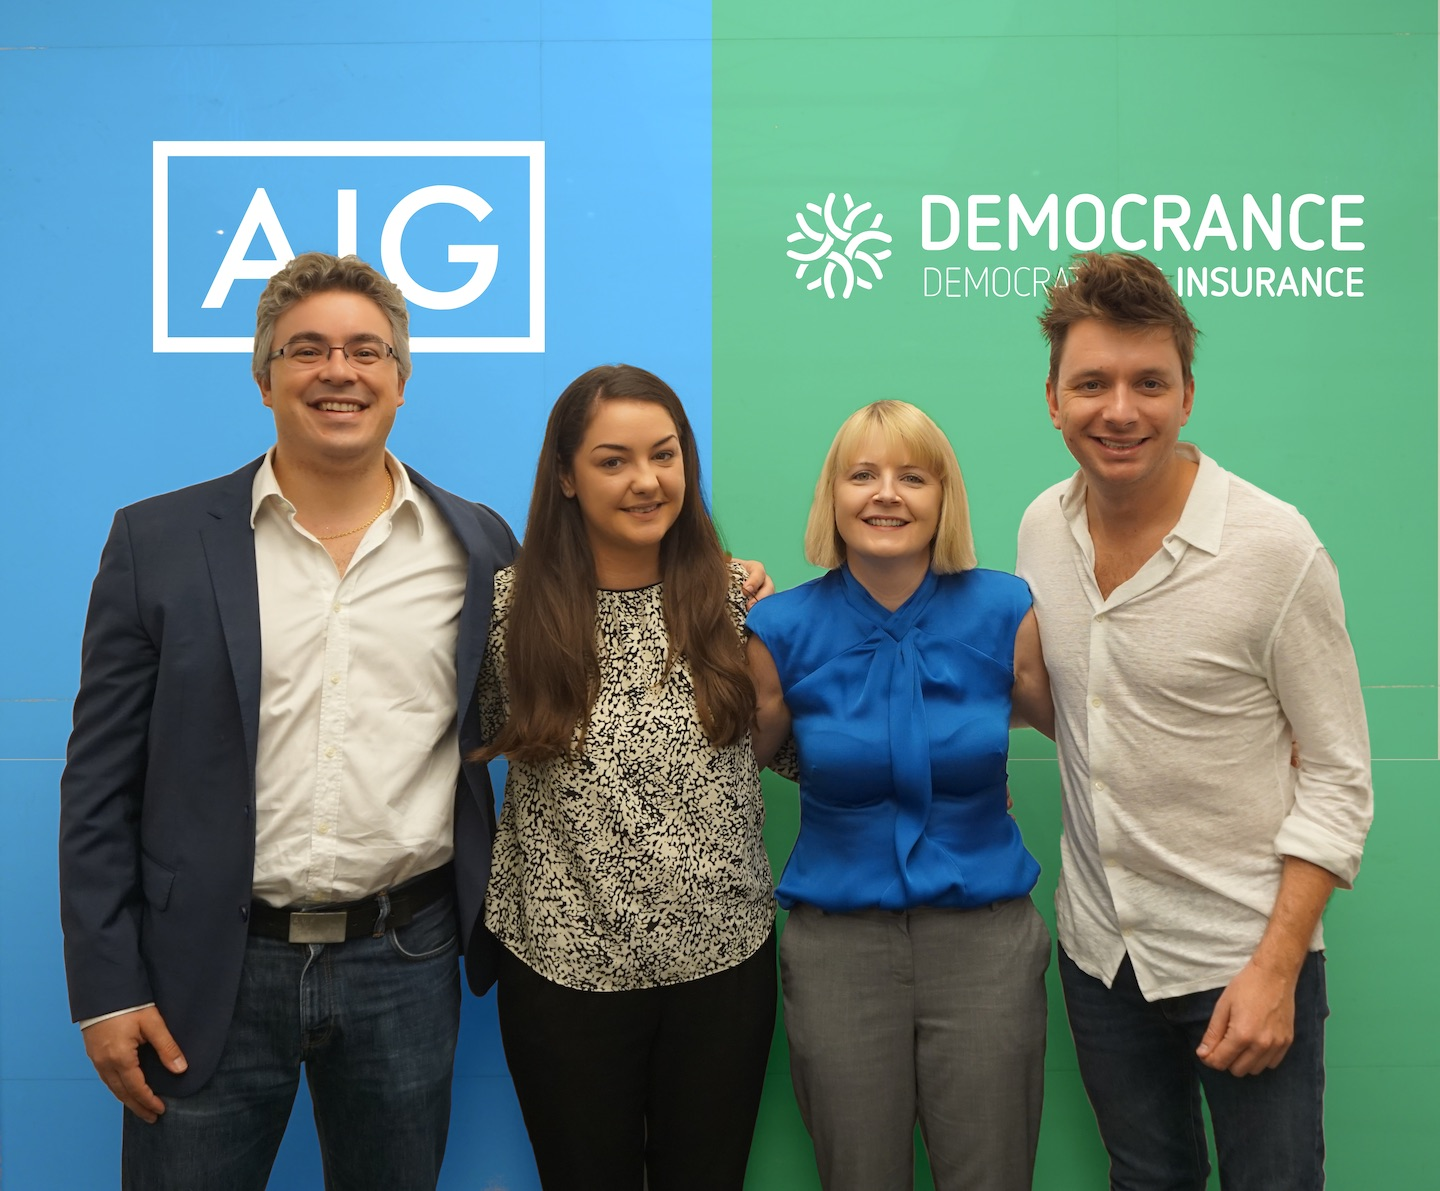 AIG MEA and UAE based Startup Democrance Partner to Disrupt Traditional Insurance Landscape